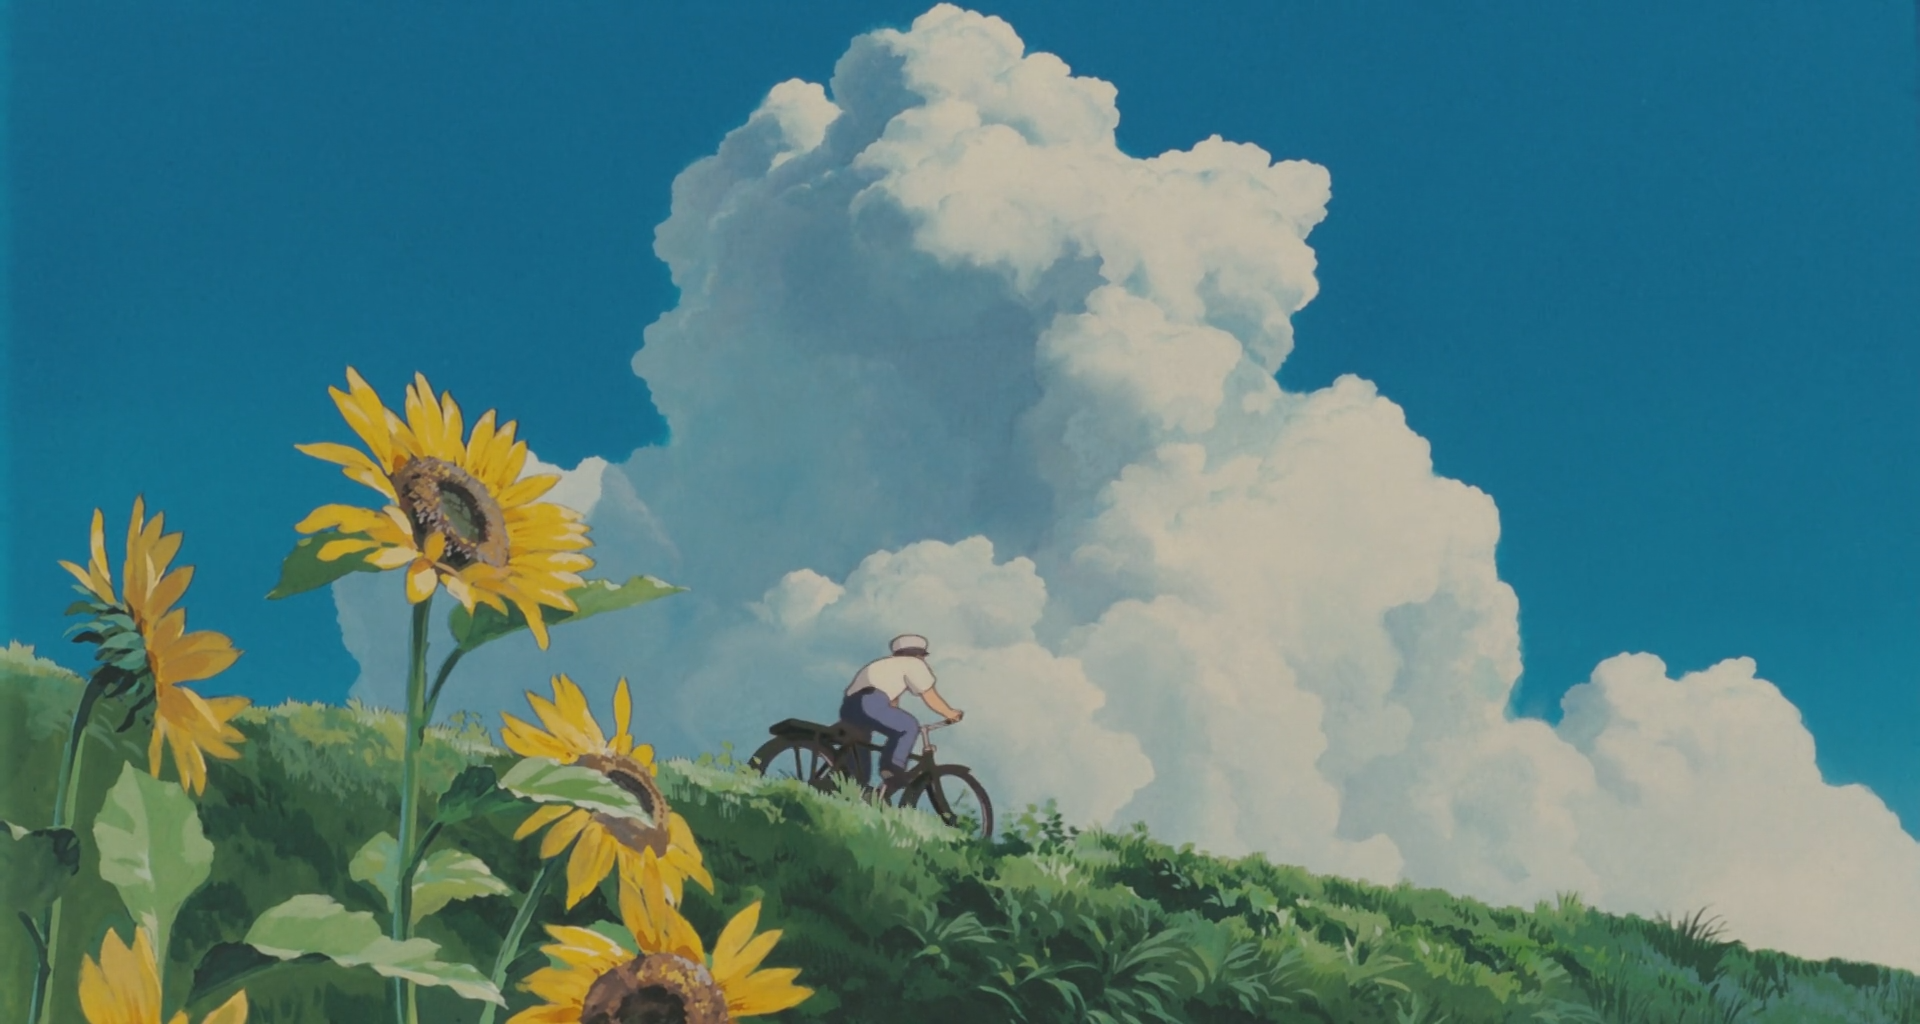 Studio Ghibli Stills My Neighbor Totoro 1920x1024 Anime Scenery Wallpaper Studio Ghibli Background Desktop Wallpaper Art